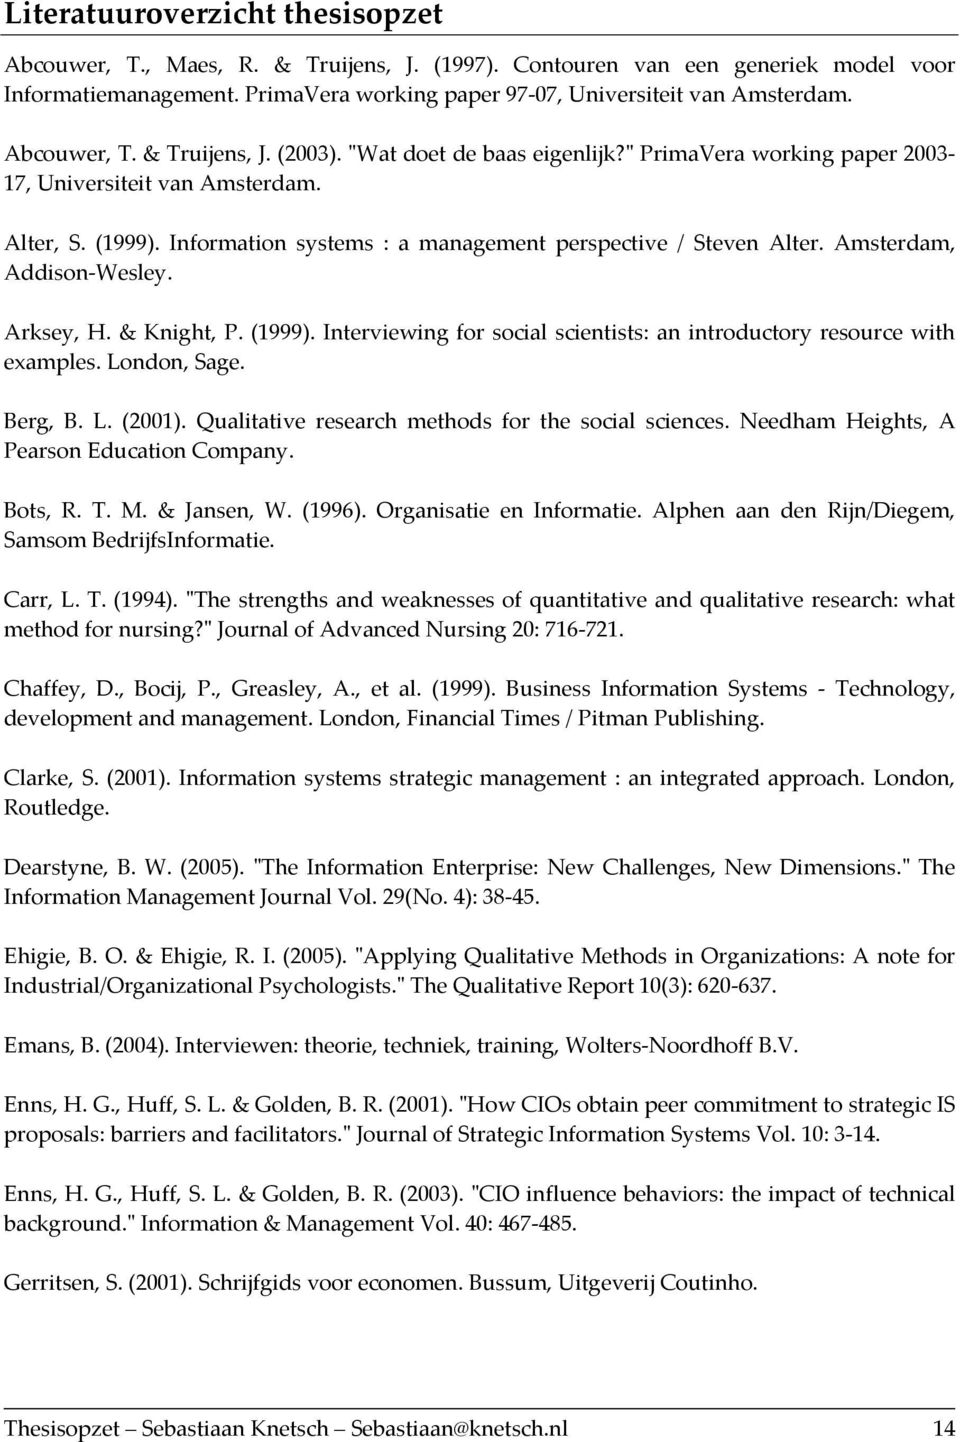 Information systems : a management perspective / Steven Alter. Amsterdam, Addison Wesley. Arksey, H. & Knight, P. (1999). Interviewing for social scientists: an introductory resource with examples.